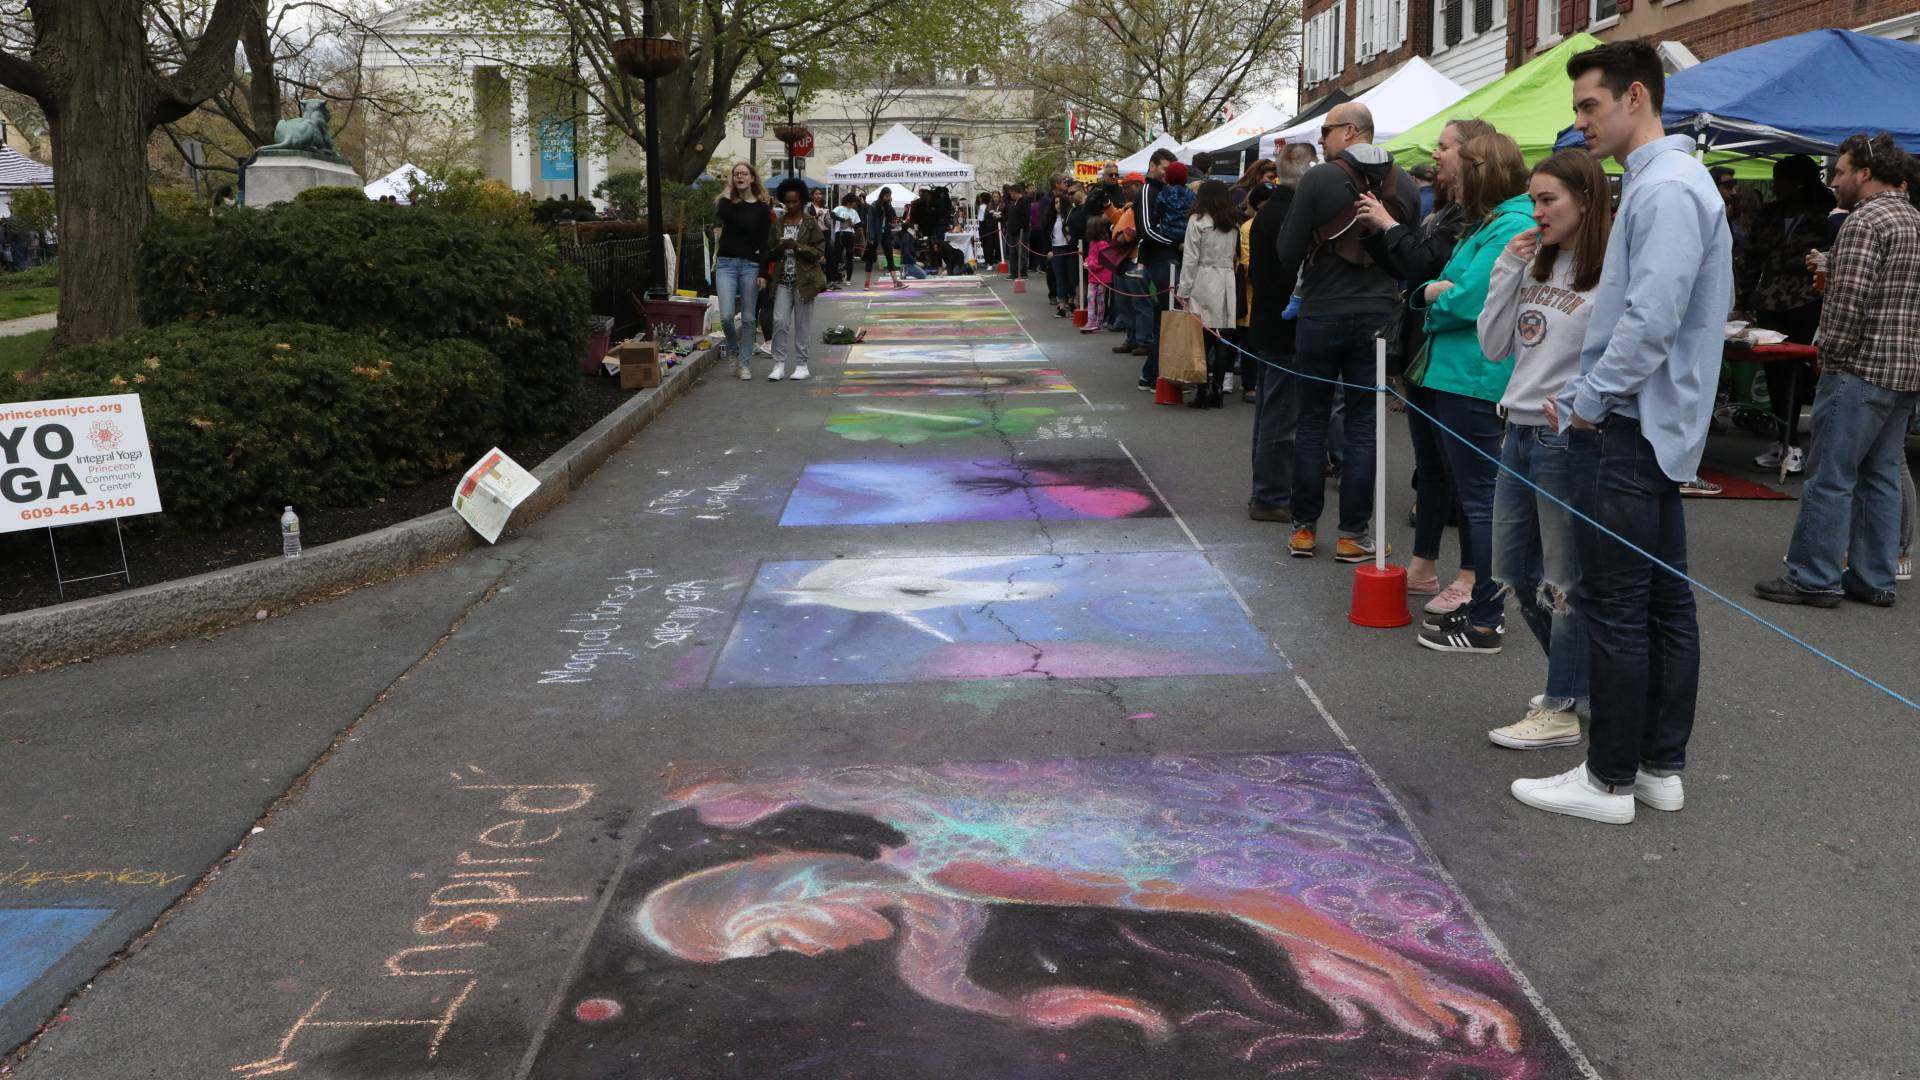 Chalk art on street during Communiversity